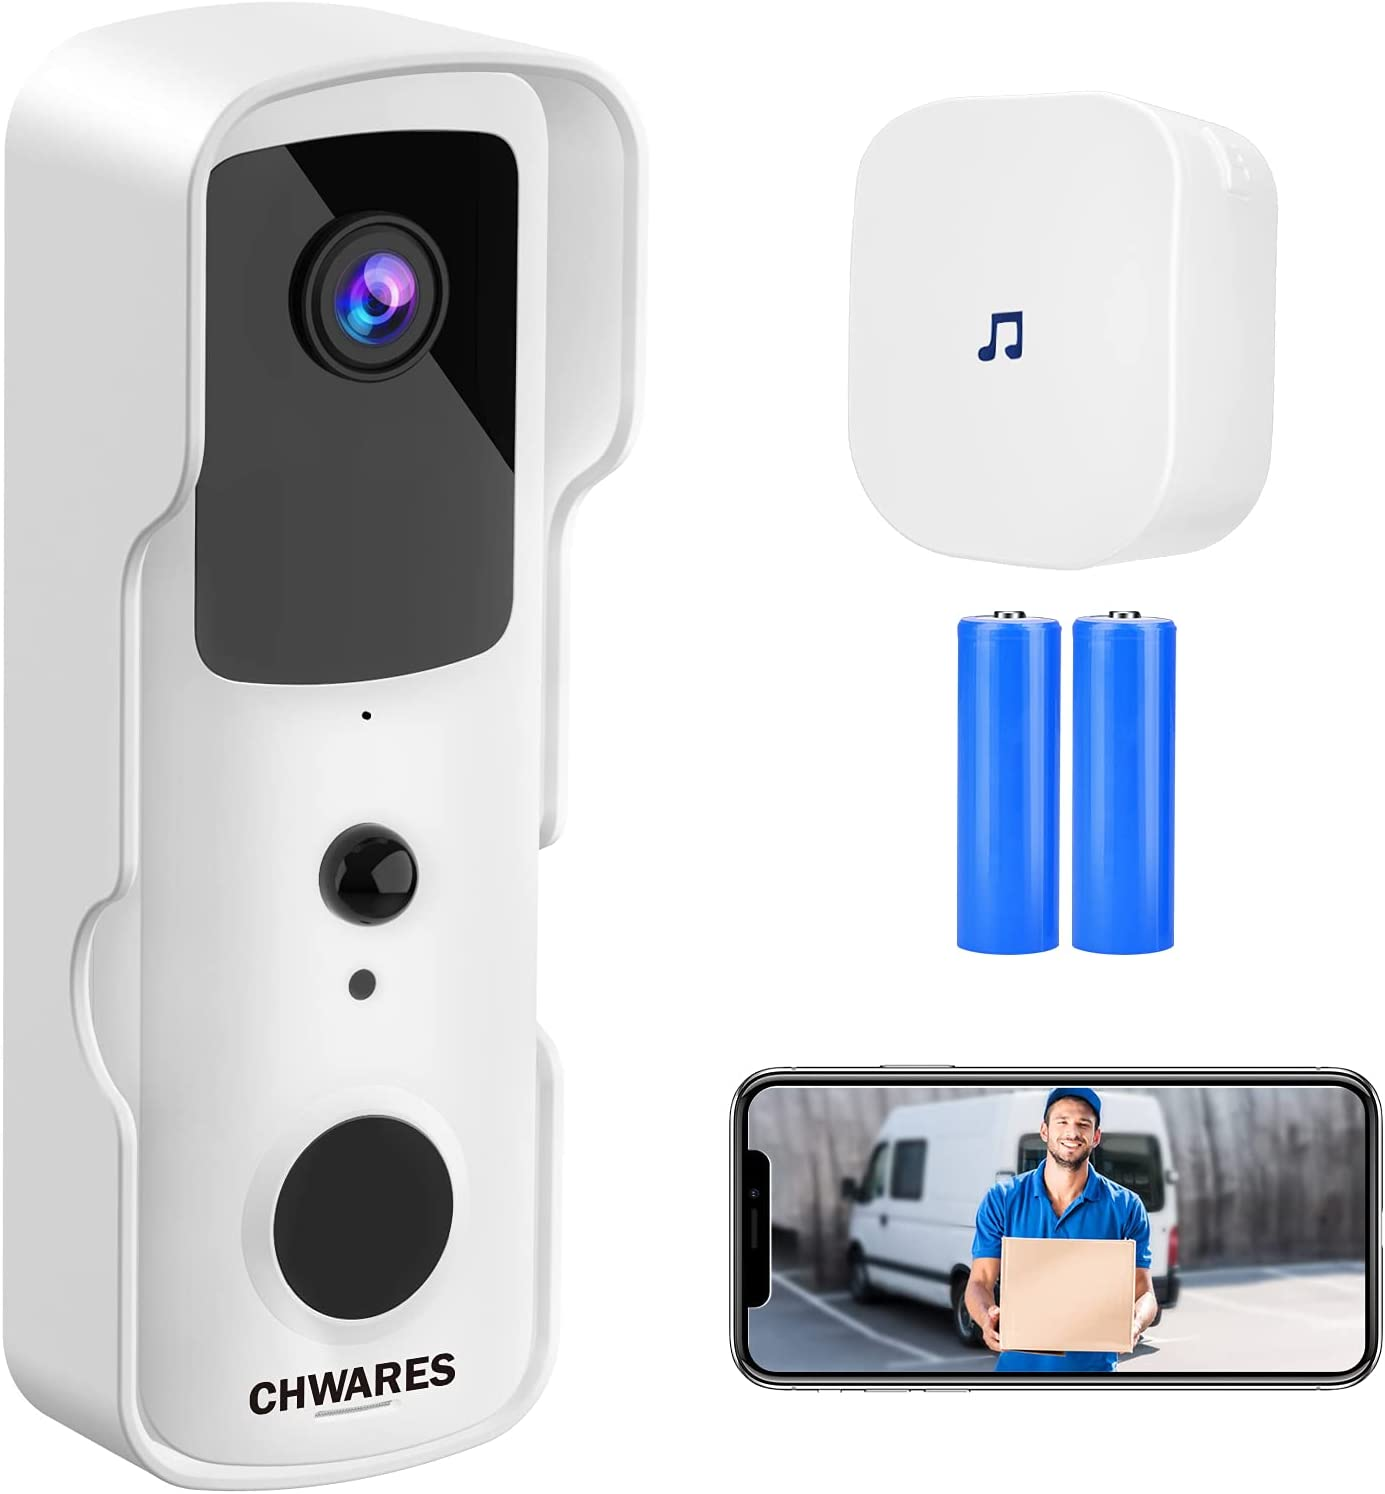 CHWARES Video Doorbell Camera Wireless WiFi with Chime for Home Security 1080P HD Night Vision 2-Way Talk Motion Detection IP65 Waterproof Easy Installation Alexa Compatible